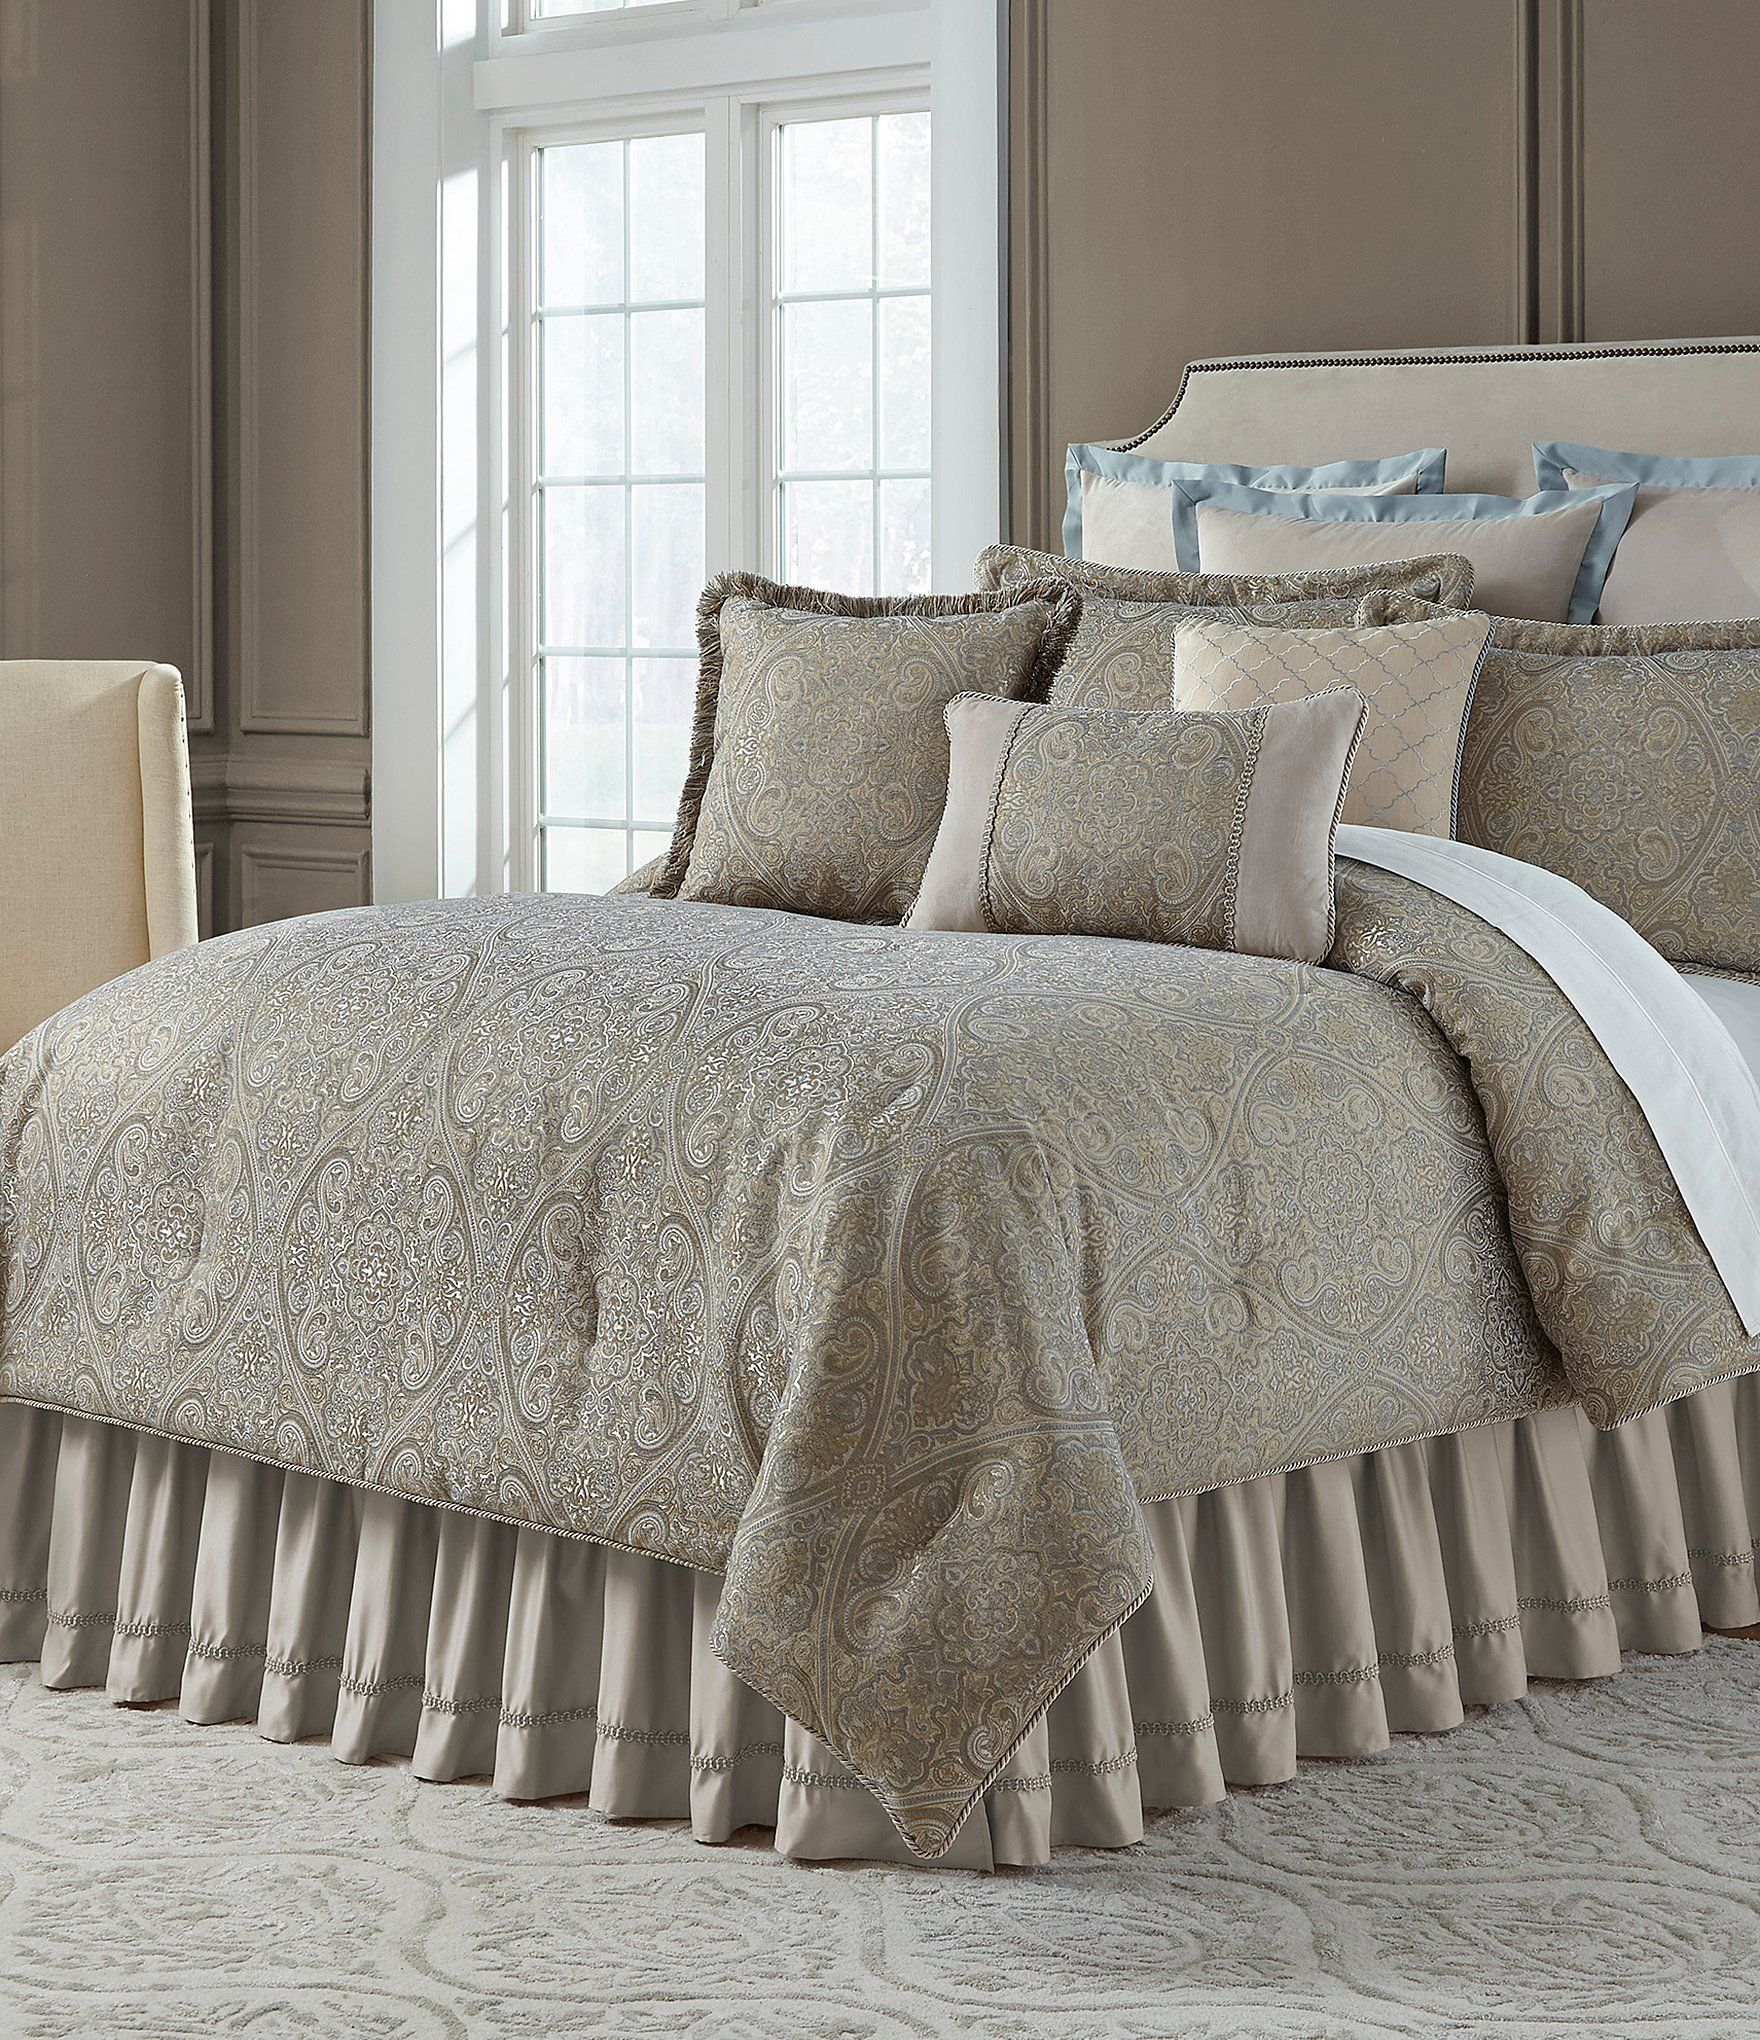 Veratex Fresco Chenille Comforter Set Dillards Bedding Samples In